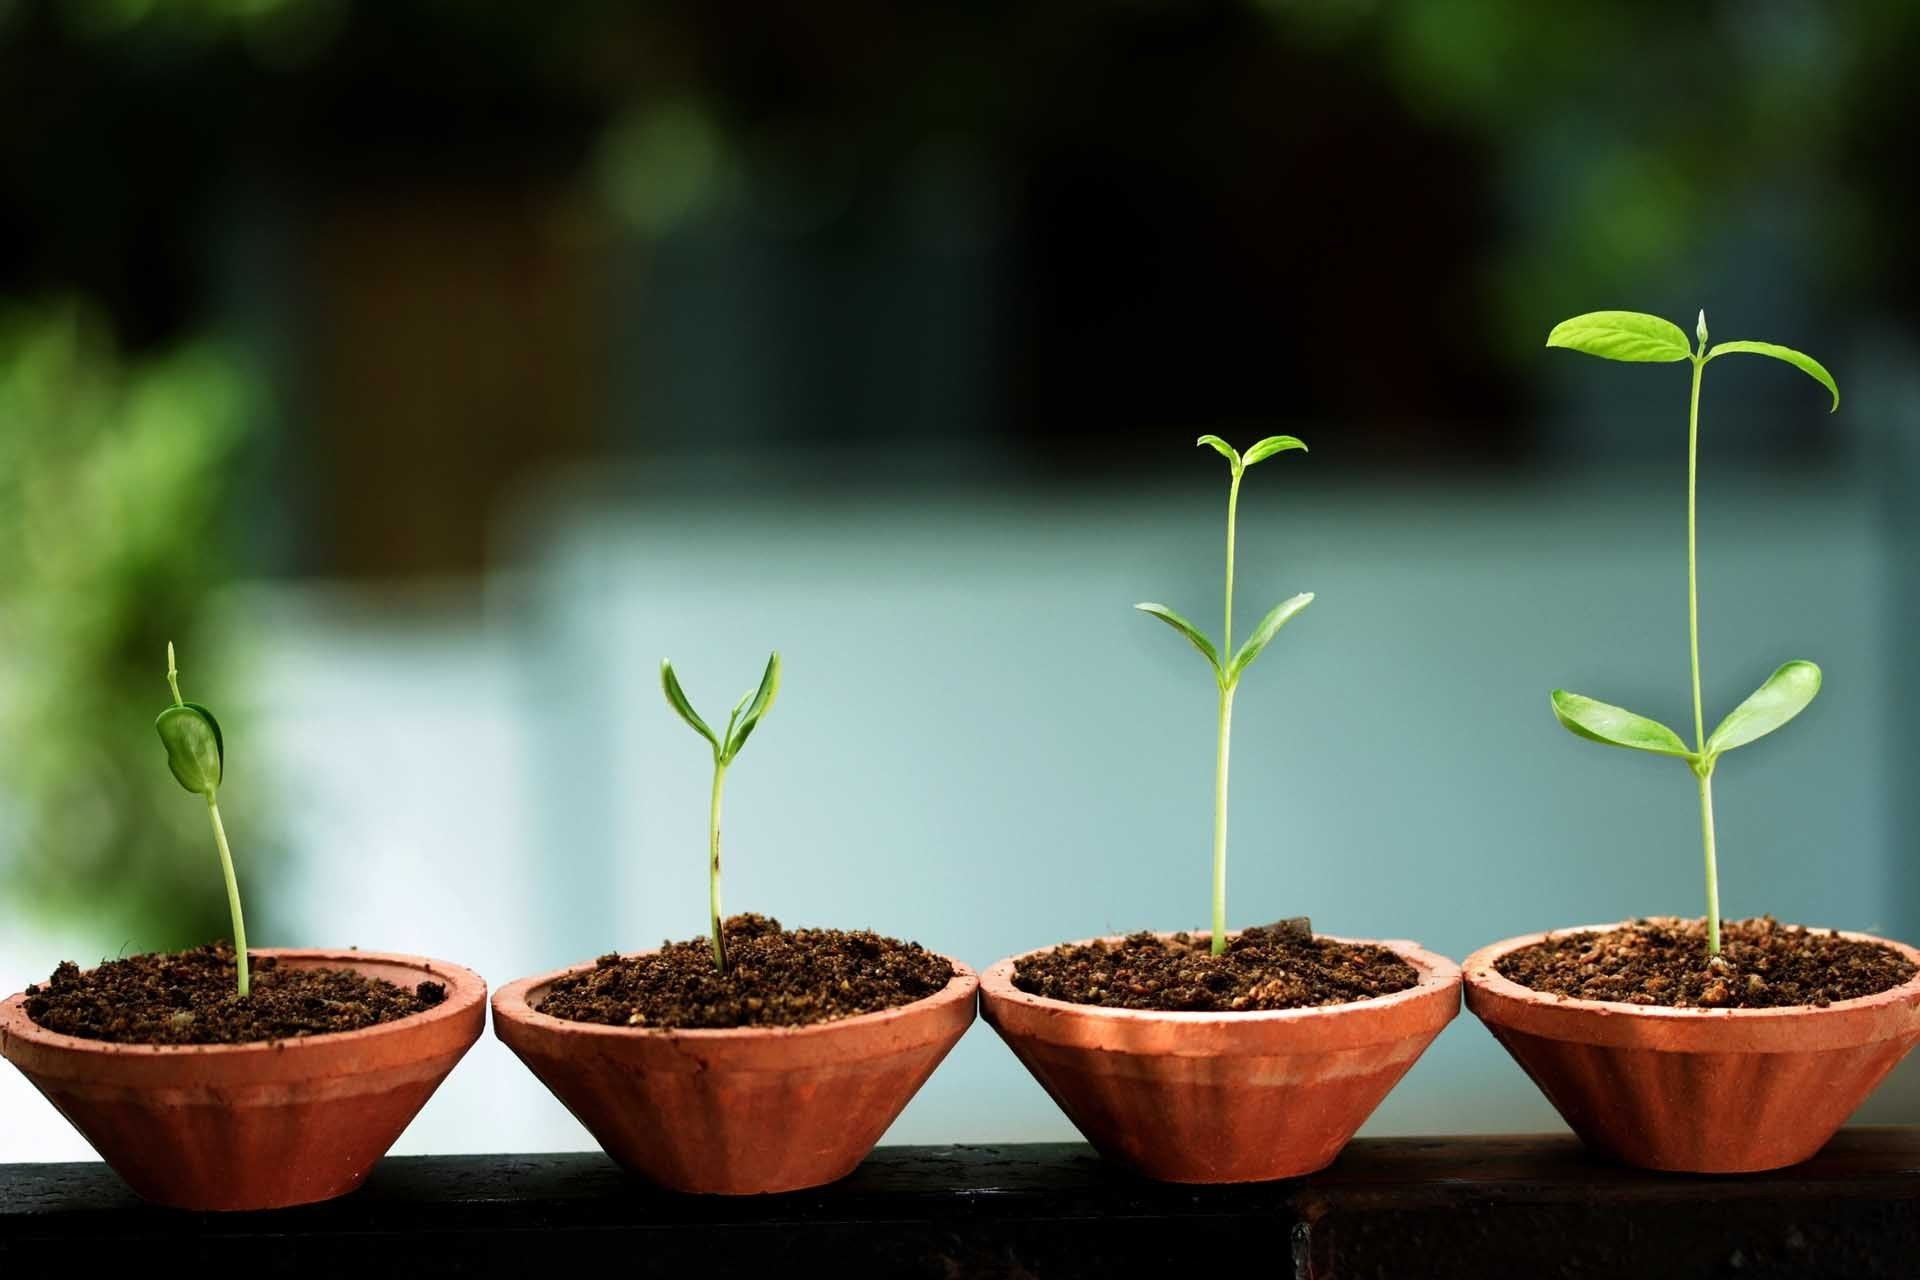 Starting a Startup - Laying the Groundwork for Your Own Company